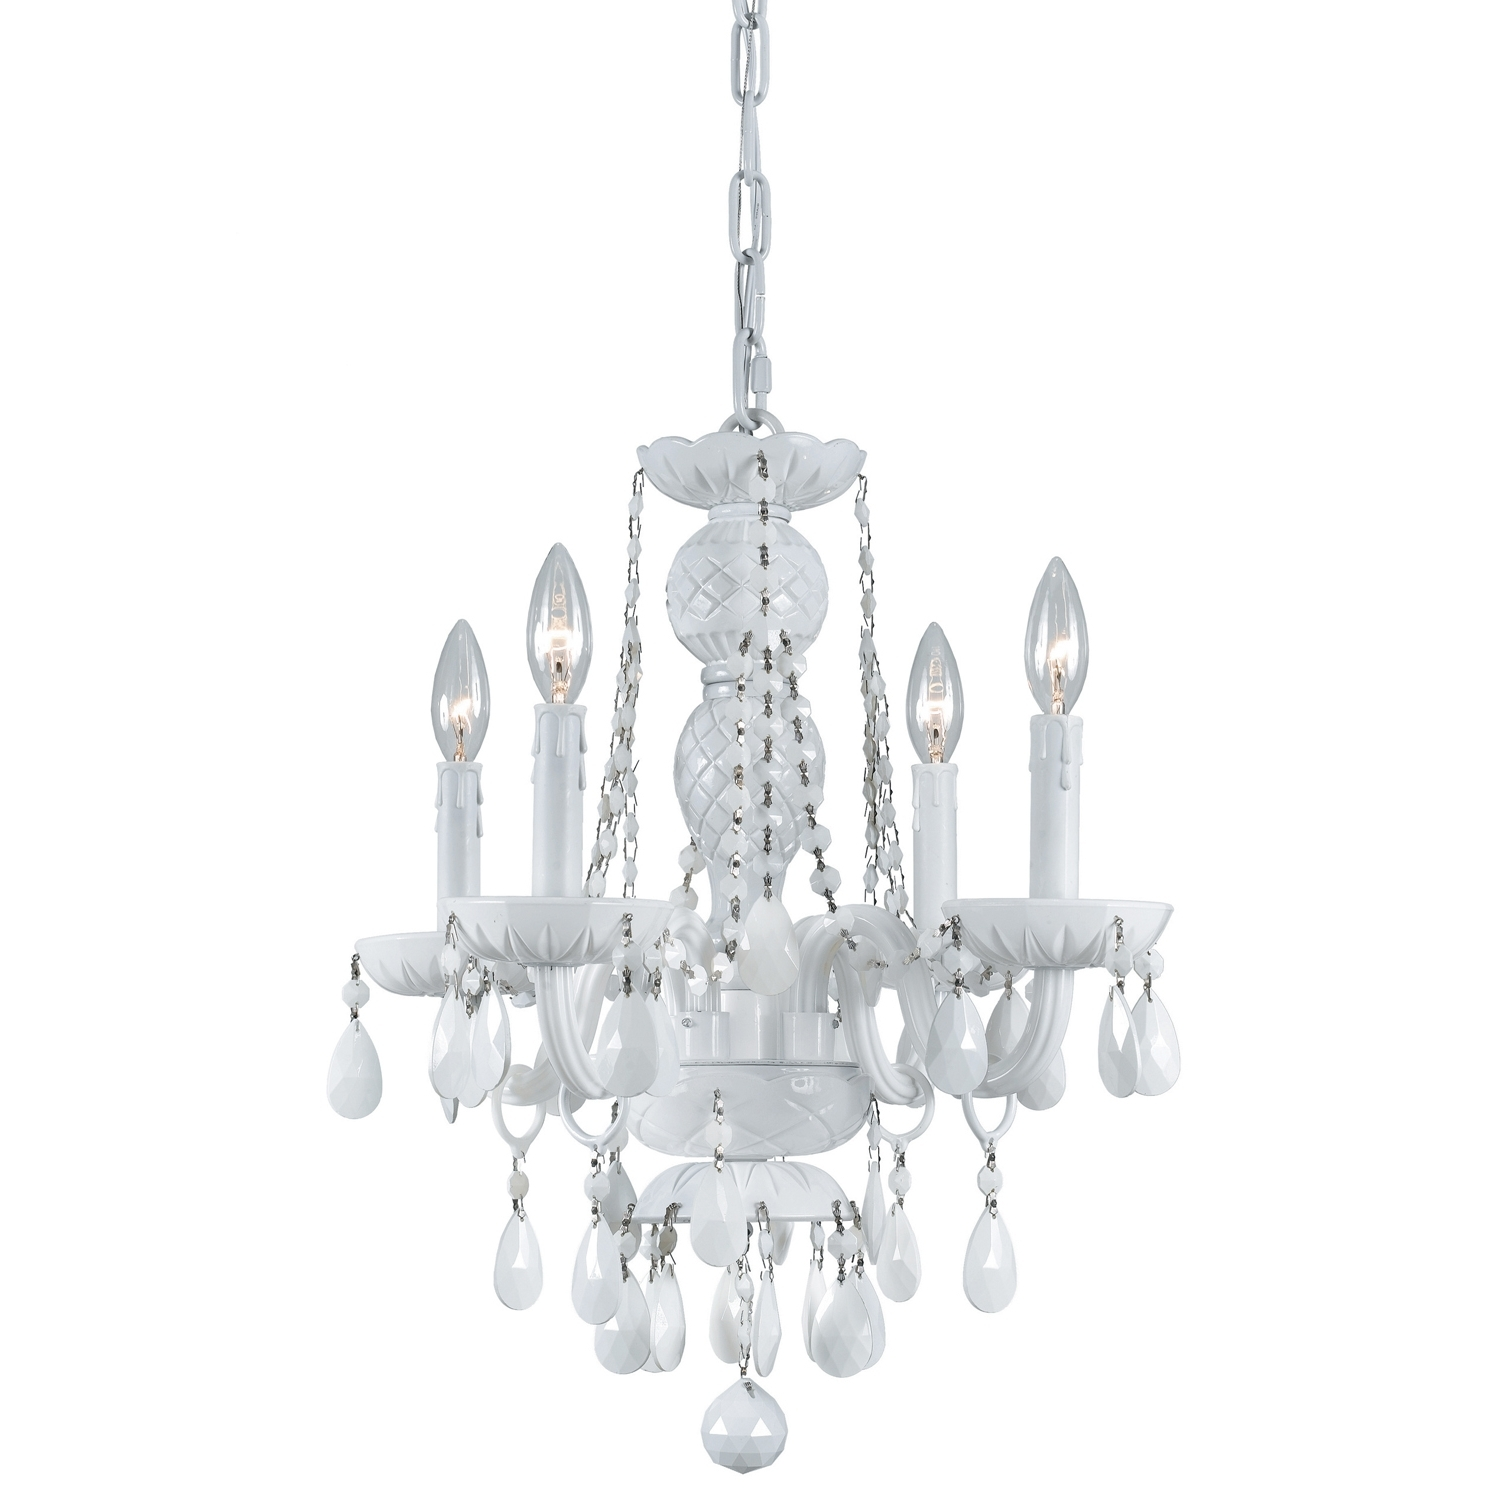 Most Current Mini Chandeliers For Bedroom – Internetunblock – Internetunblock Within Small White Chandeliers (View 4 of 15)